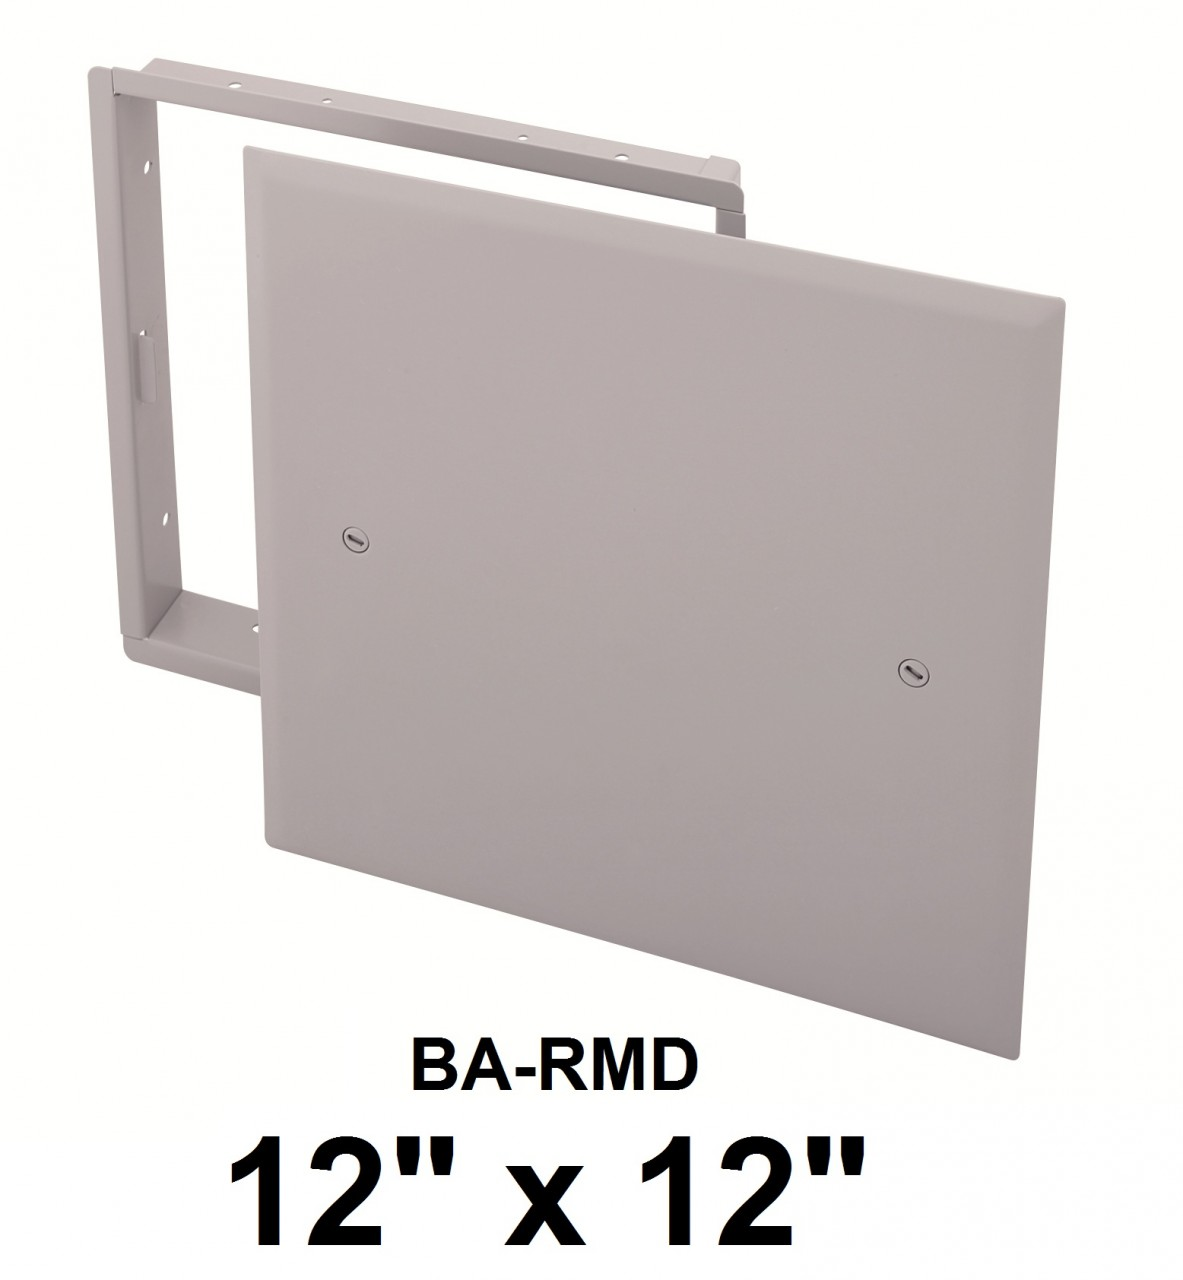 Access Panel BA-RMD 12 x 12 Removeable with Hidden Flange - BEST